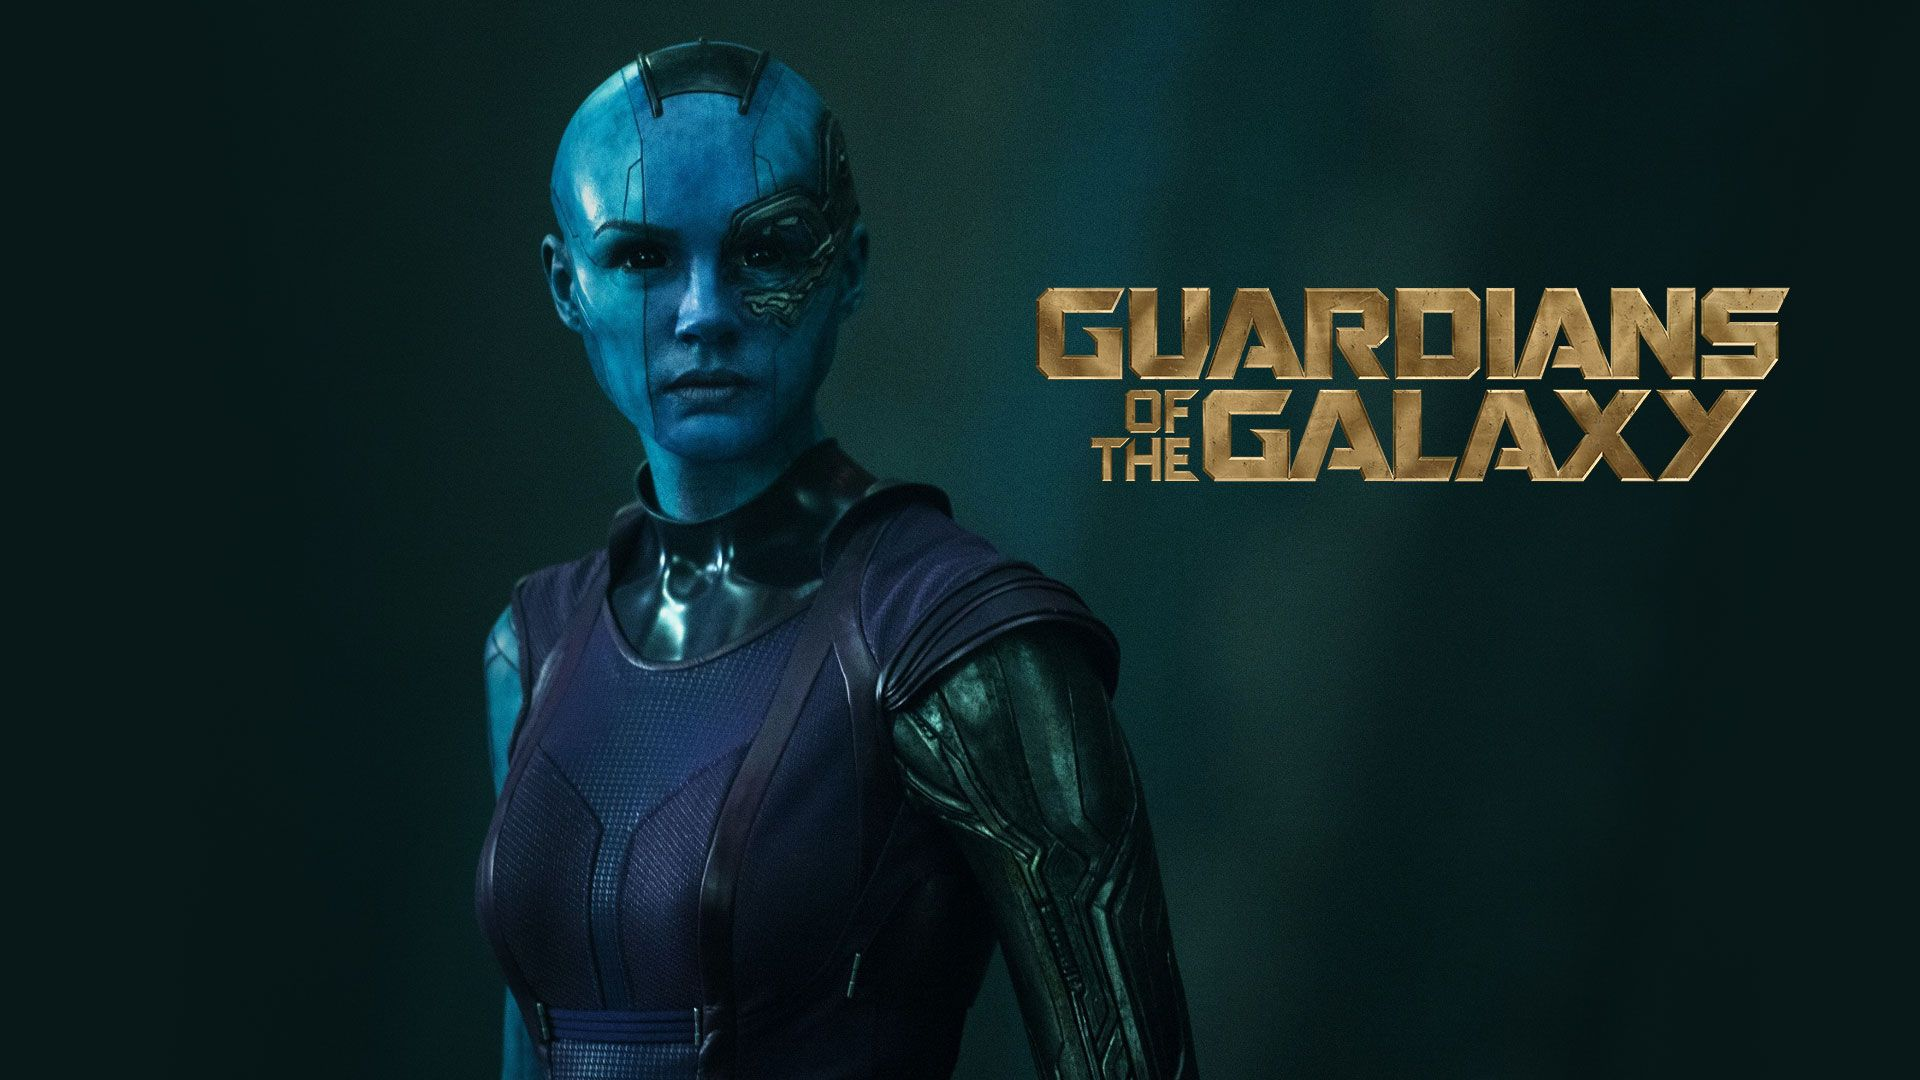 Marvels Guardians of the Galaxy 2014 HD Wallpapers for Desktop 1920x1080